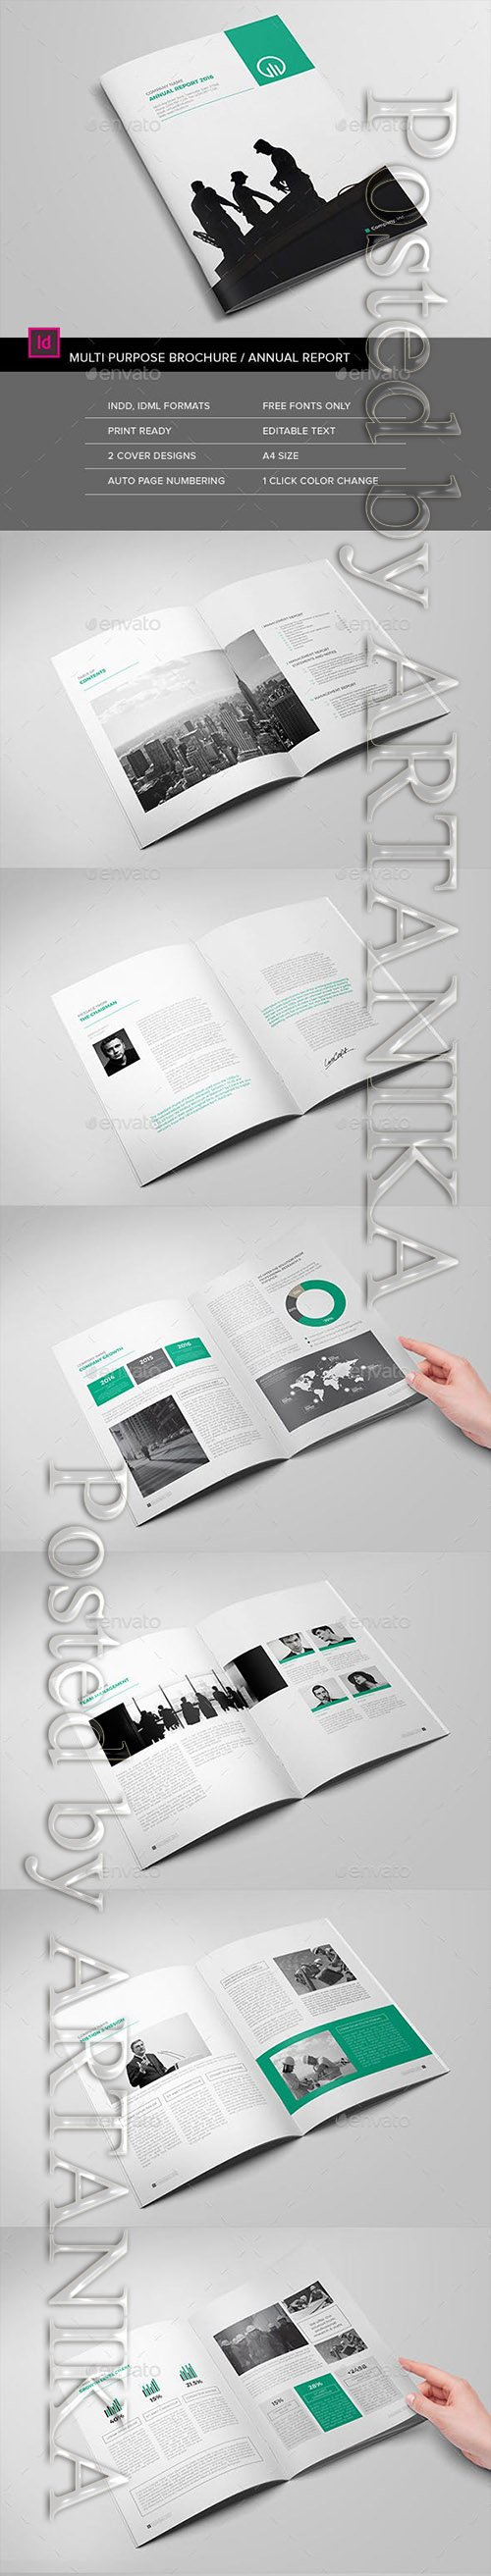 Graphicriver - The Brochure / The Annual Report 15598565